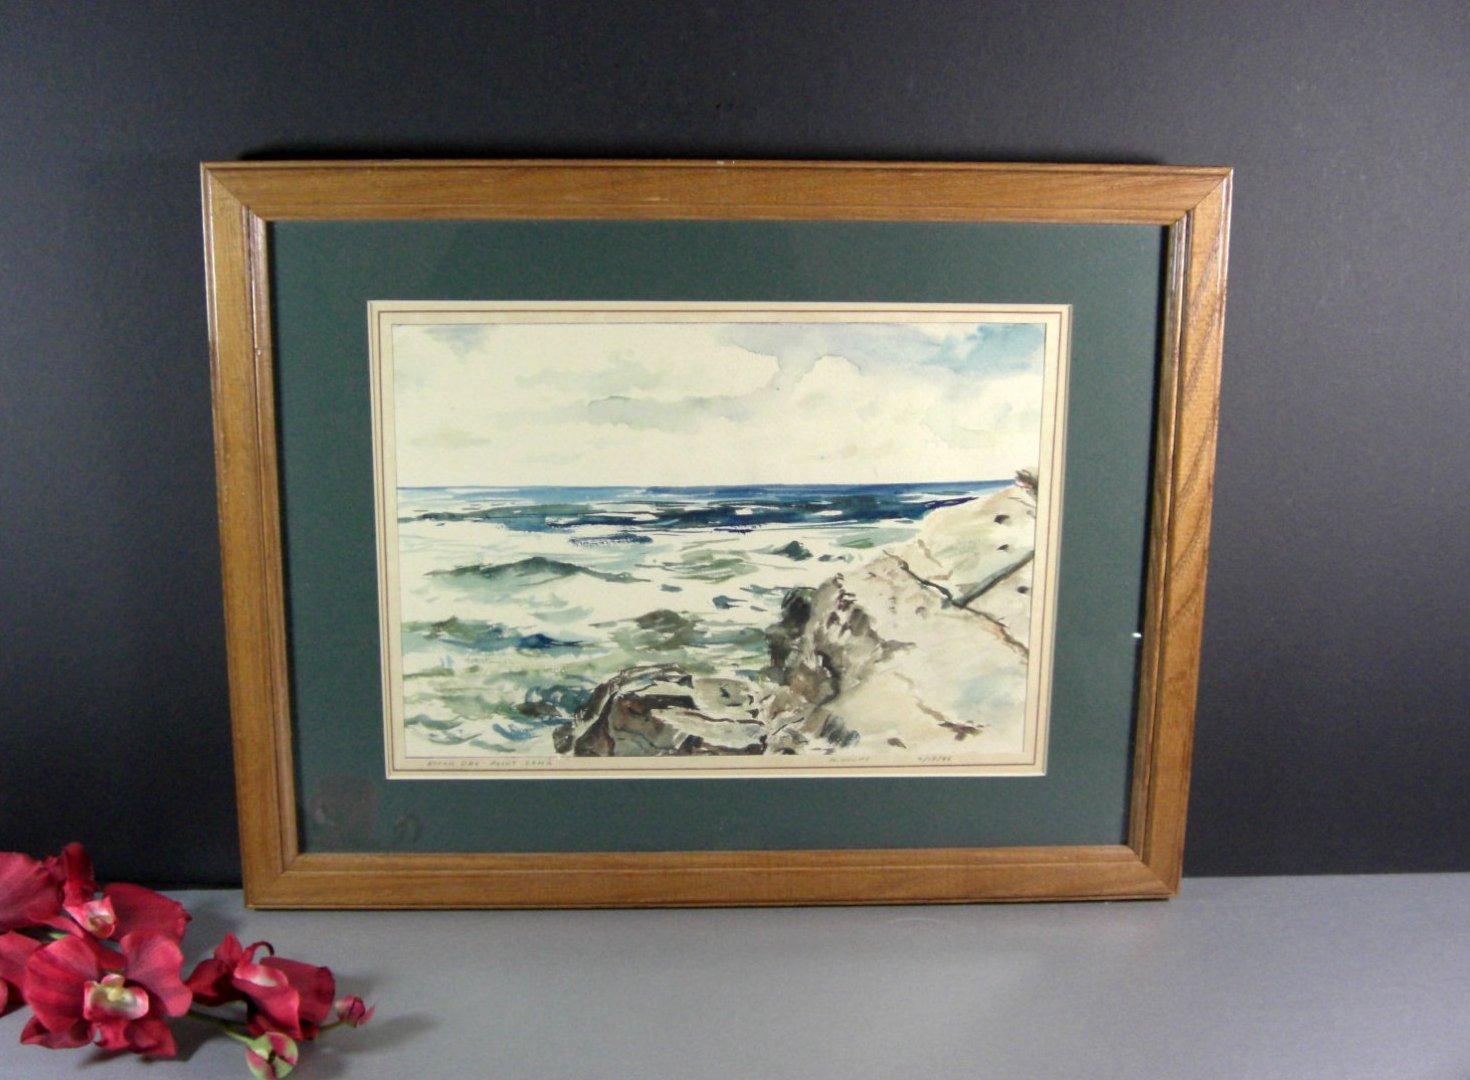 Water Color Painting by Texas Artist Henry Houpy / Signed Dated 1945 Framed unde